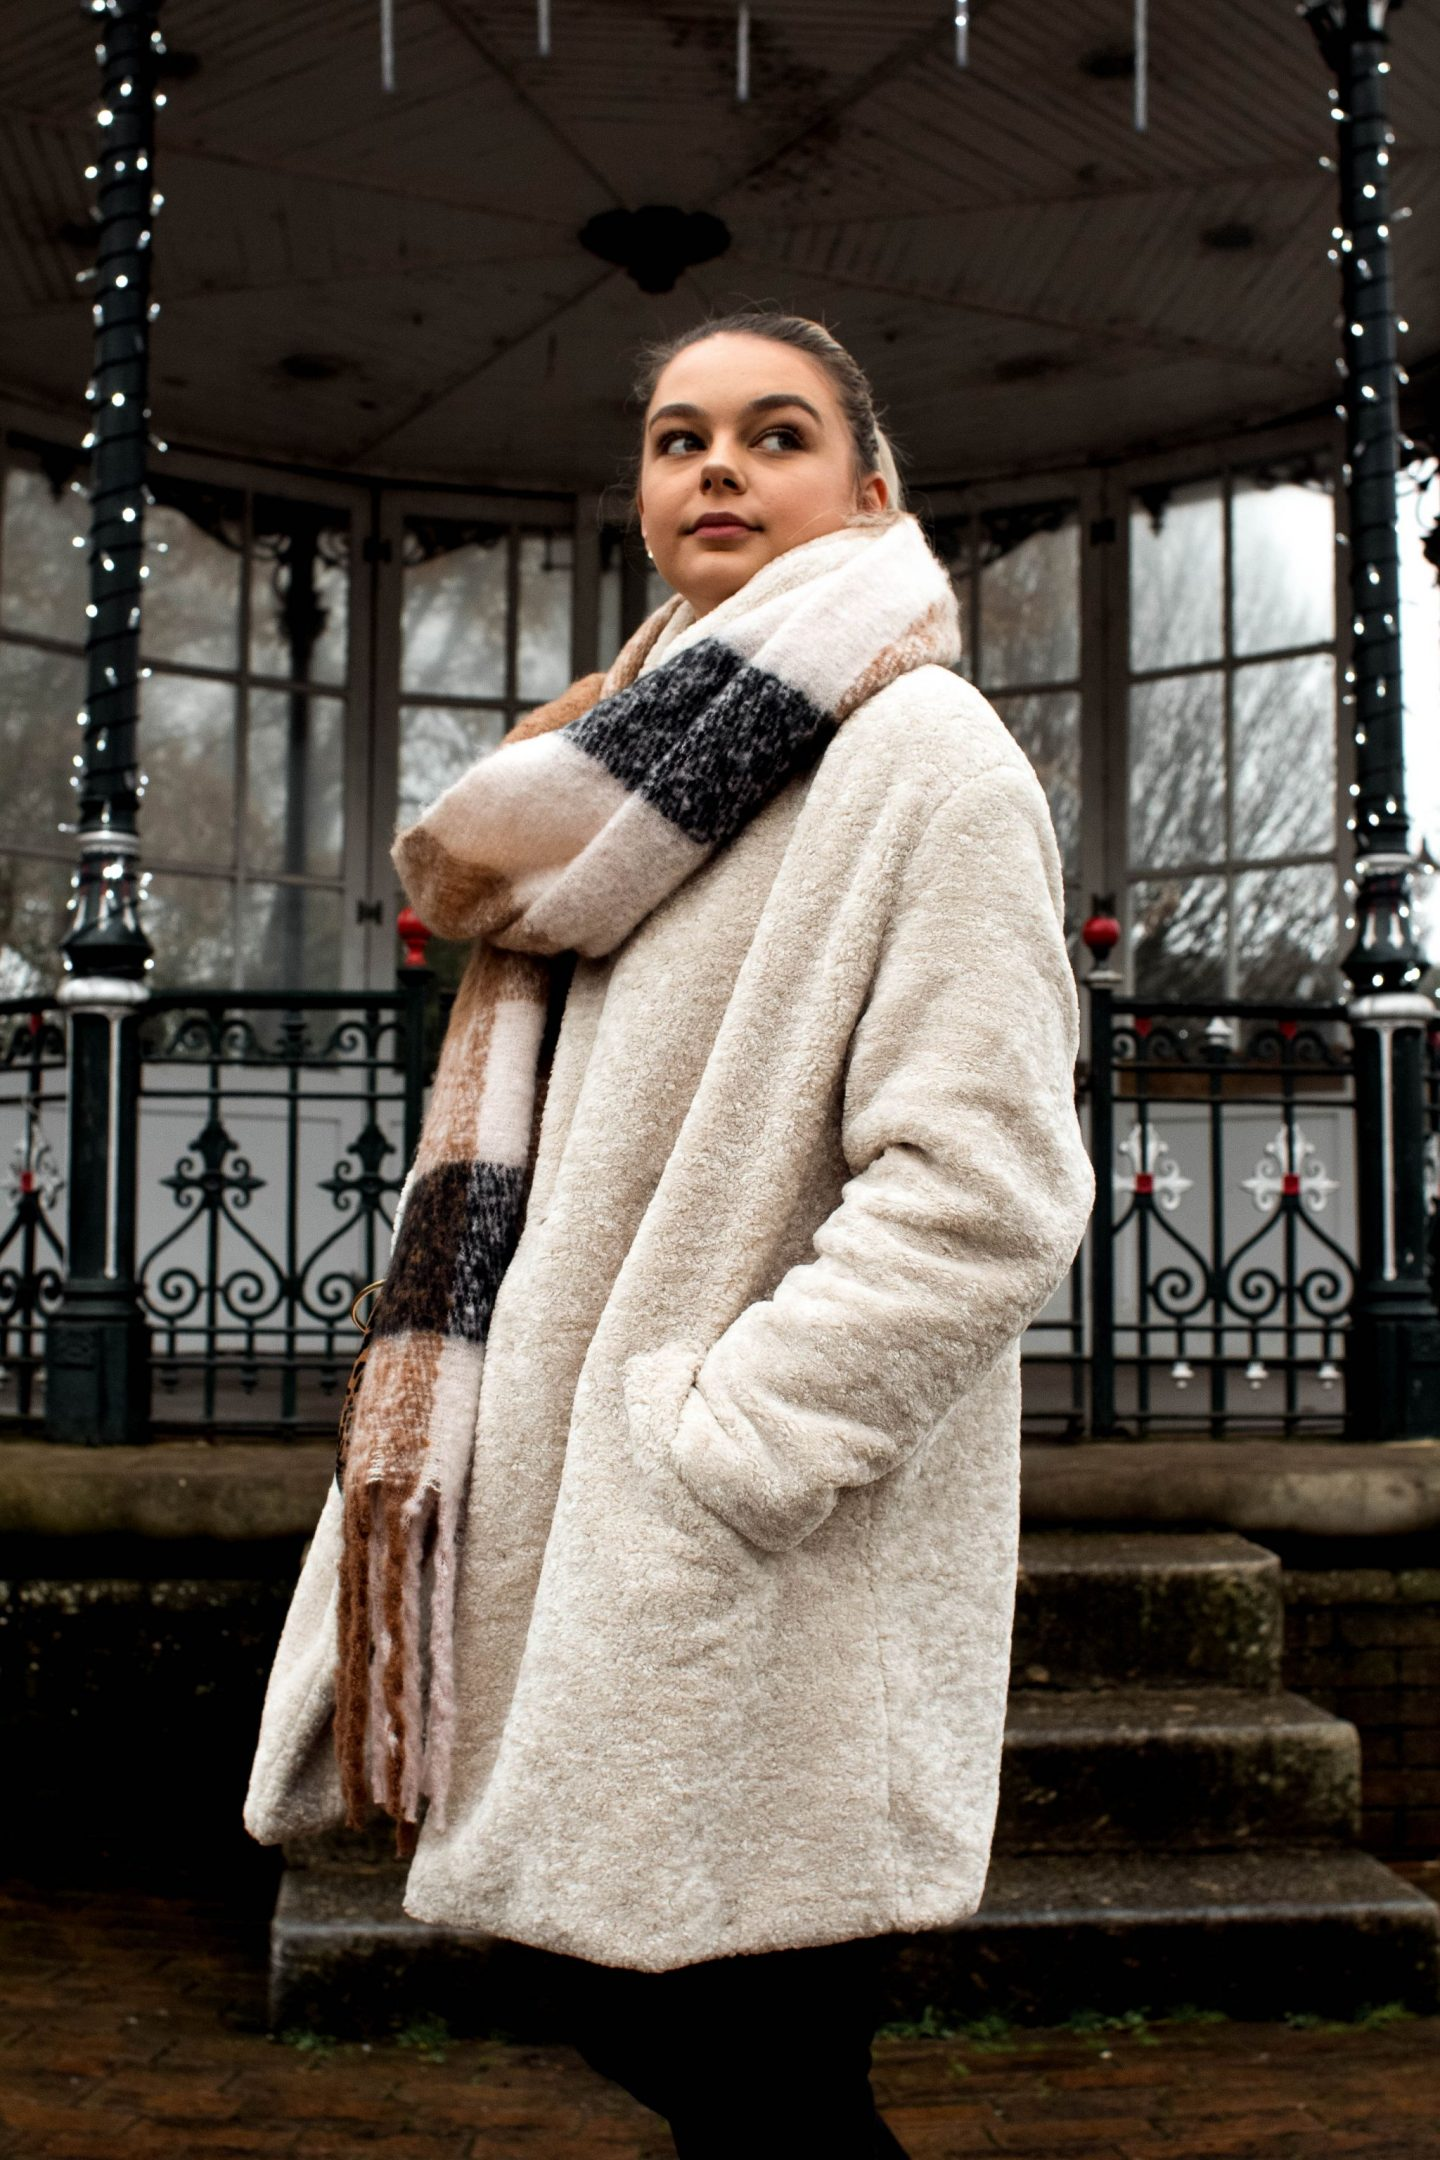 This image is a photo of me in my new white and fluffy coat, an oversized scarf and black jeans. I am stood in front of an old band stand in Dartmouth that has while fairy lights wrapped around it. Very festive for this blog post about my new chapter.